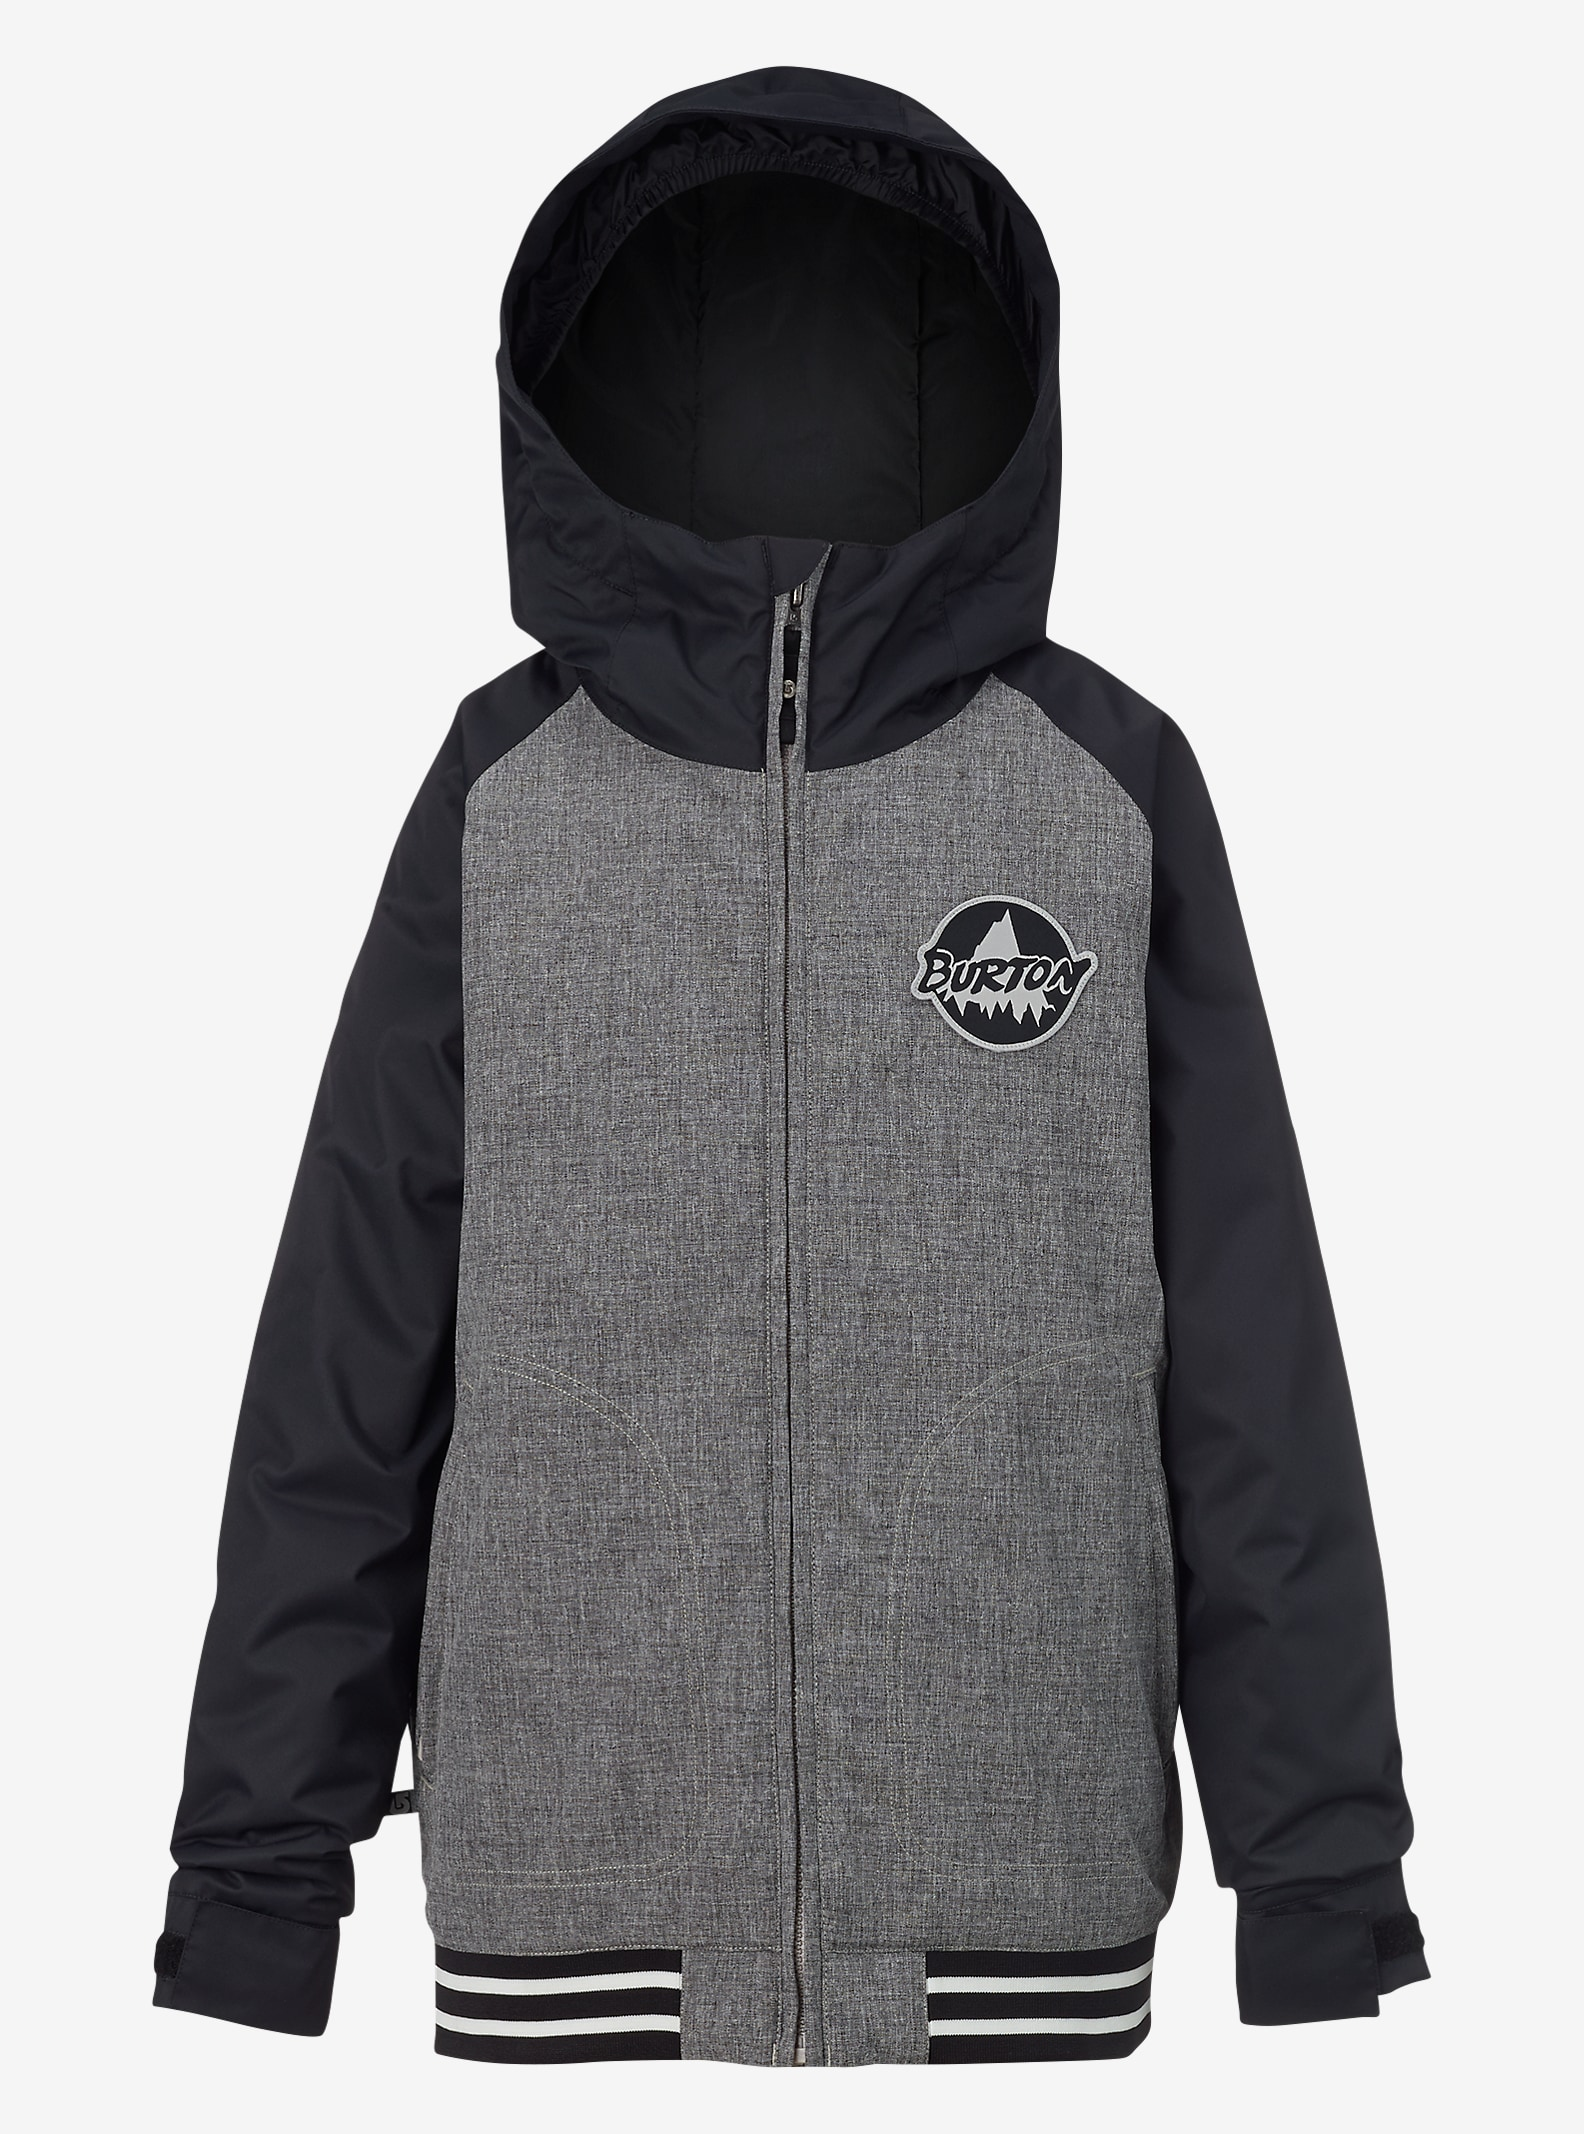 Burton Game Day Jacke für Jungen angezeigt in Heather Iron Gray / True Black